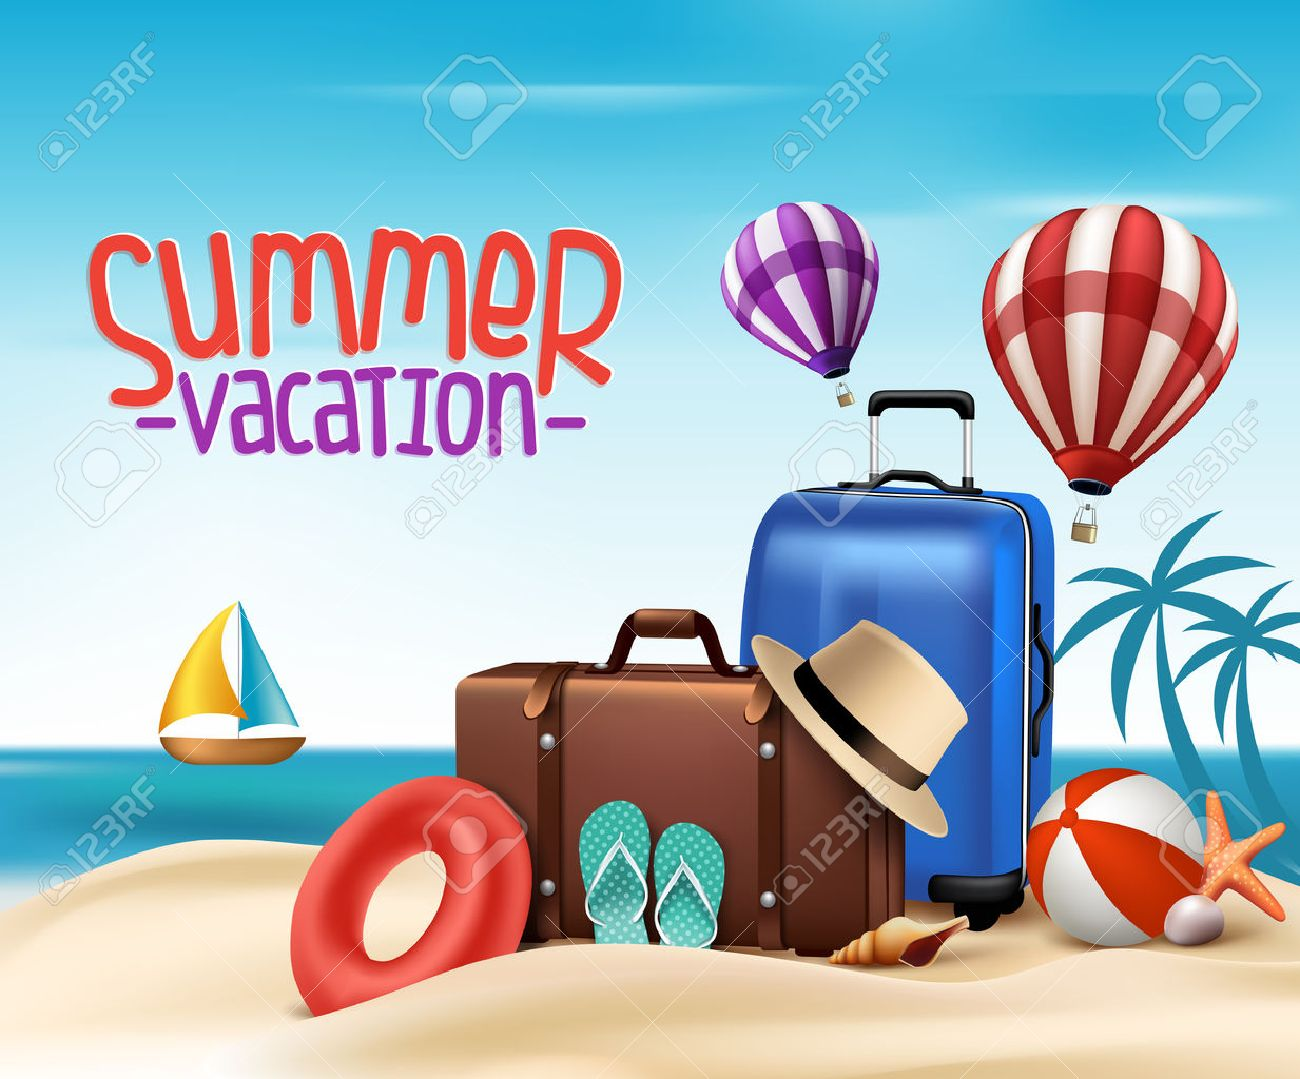 Poster design 3d - 3d Realistic Summer Vacation Poster Design With Bags In Beach Sea Shore Vector Illustration Stock